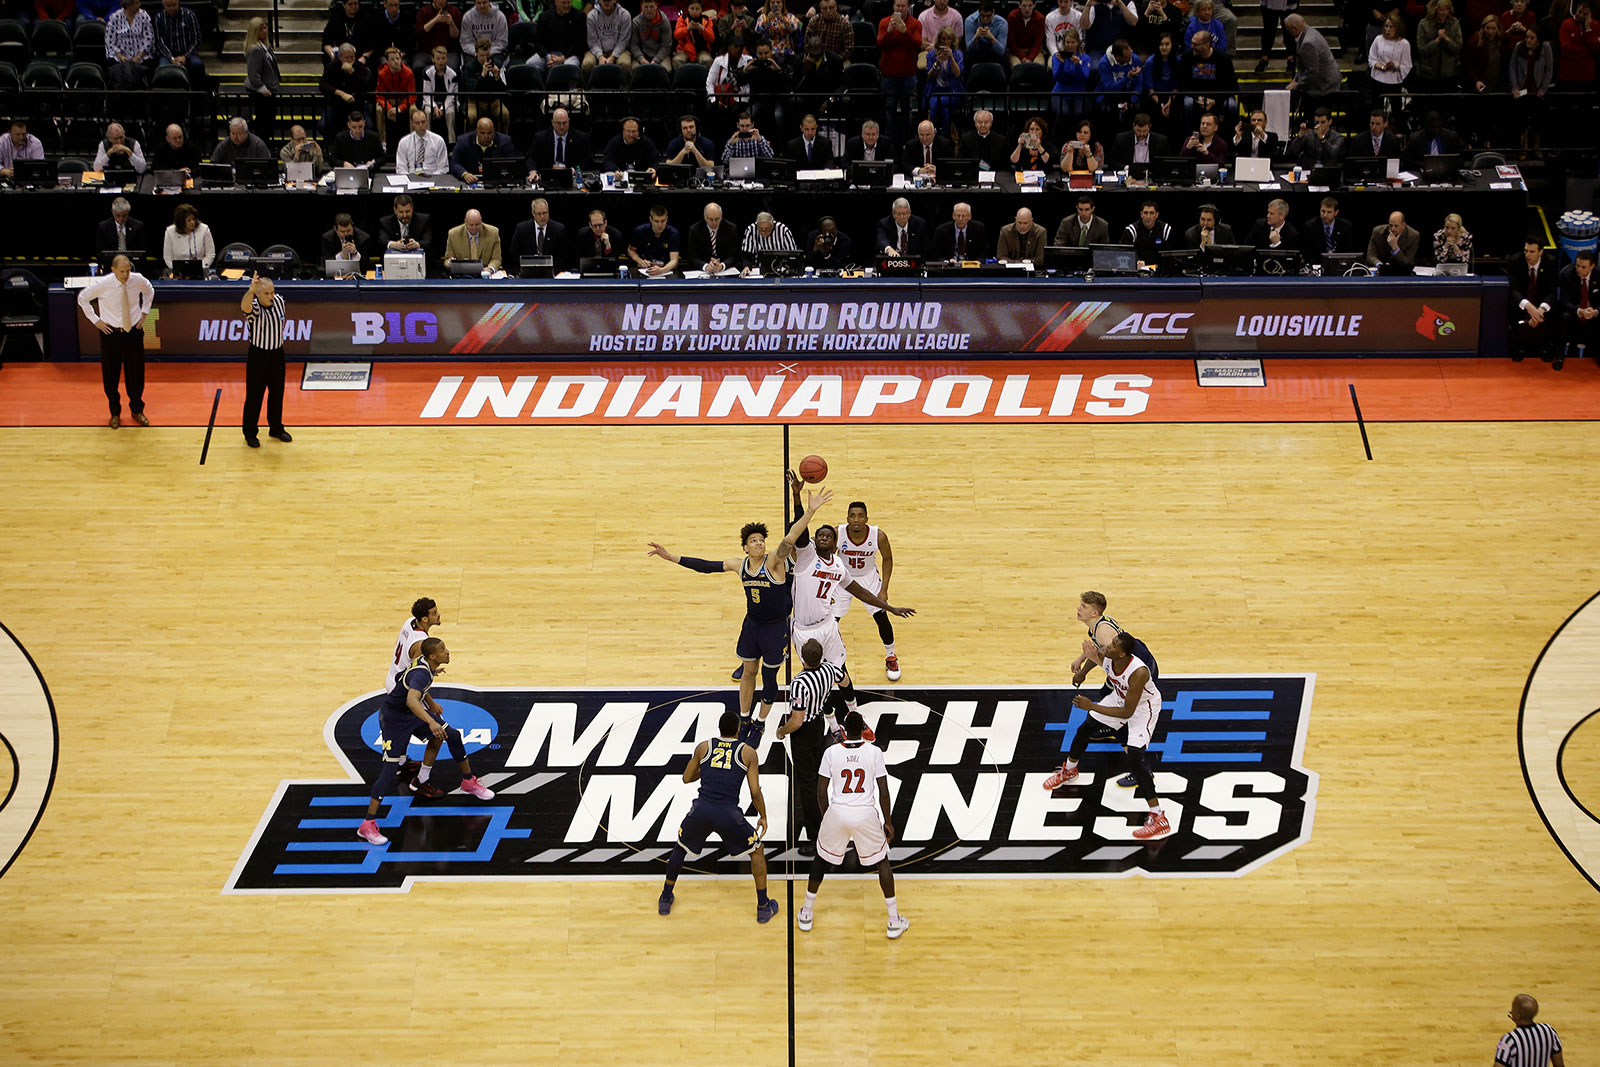 Indianapolis hosted the first and second rounds of the NCAA men's basketball tournament in 2017.